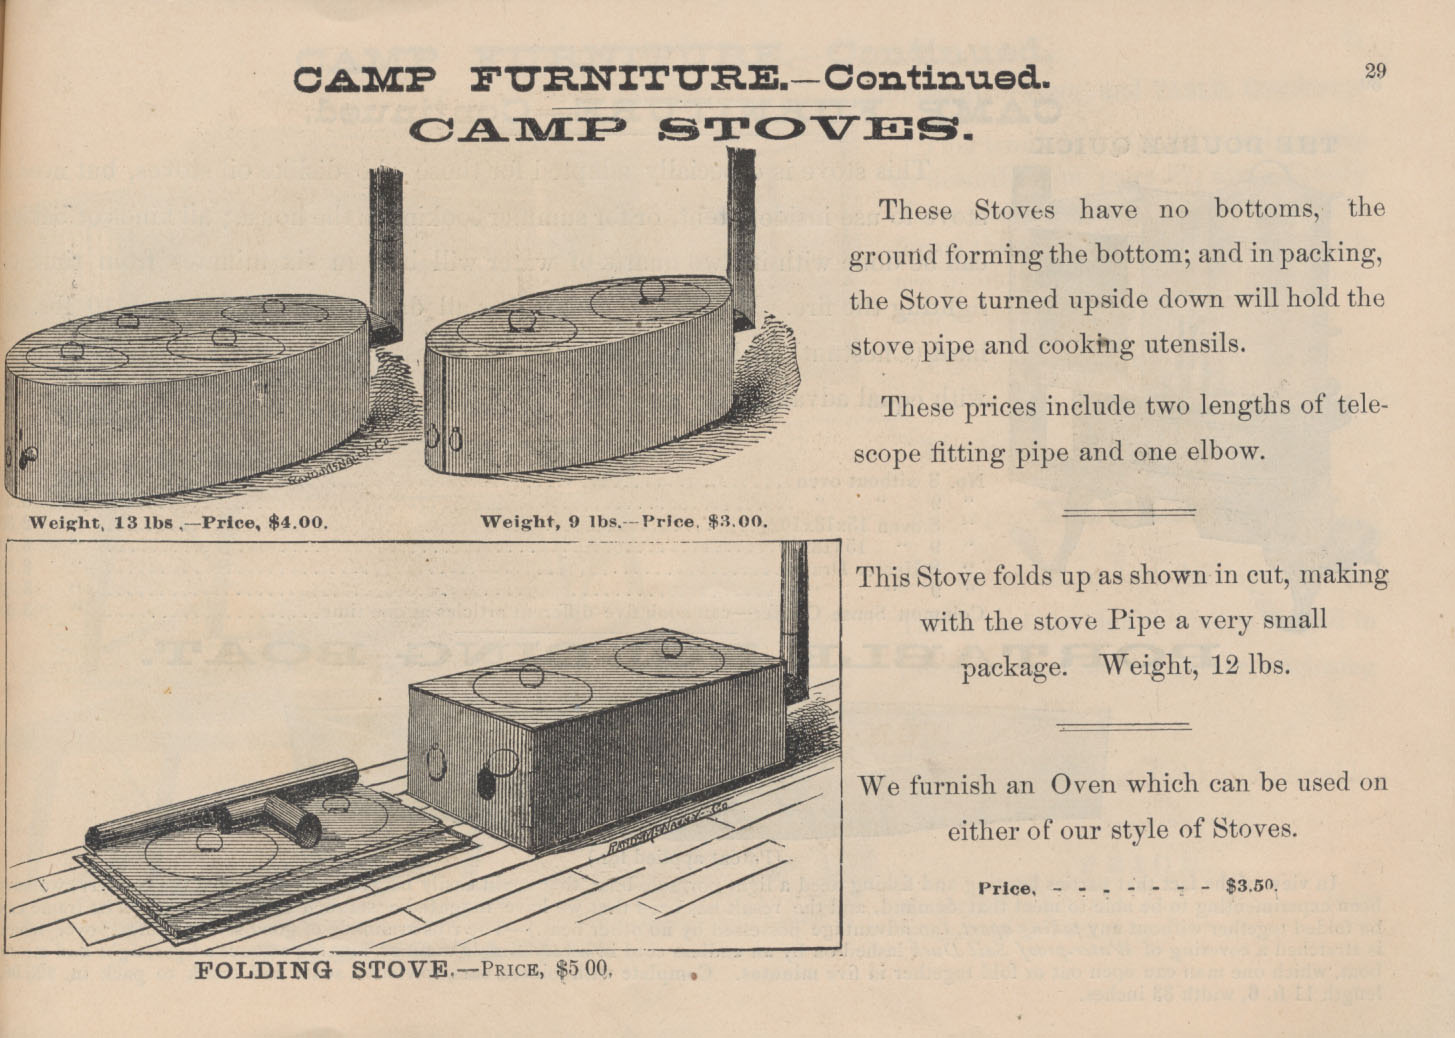 two camp stoves and a folding stove shown in the folded and unfolded positions